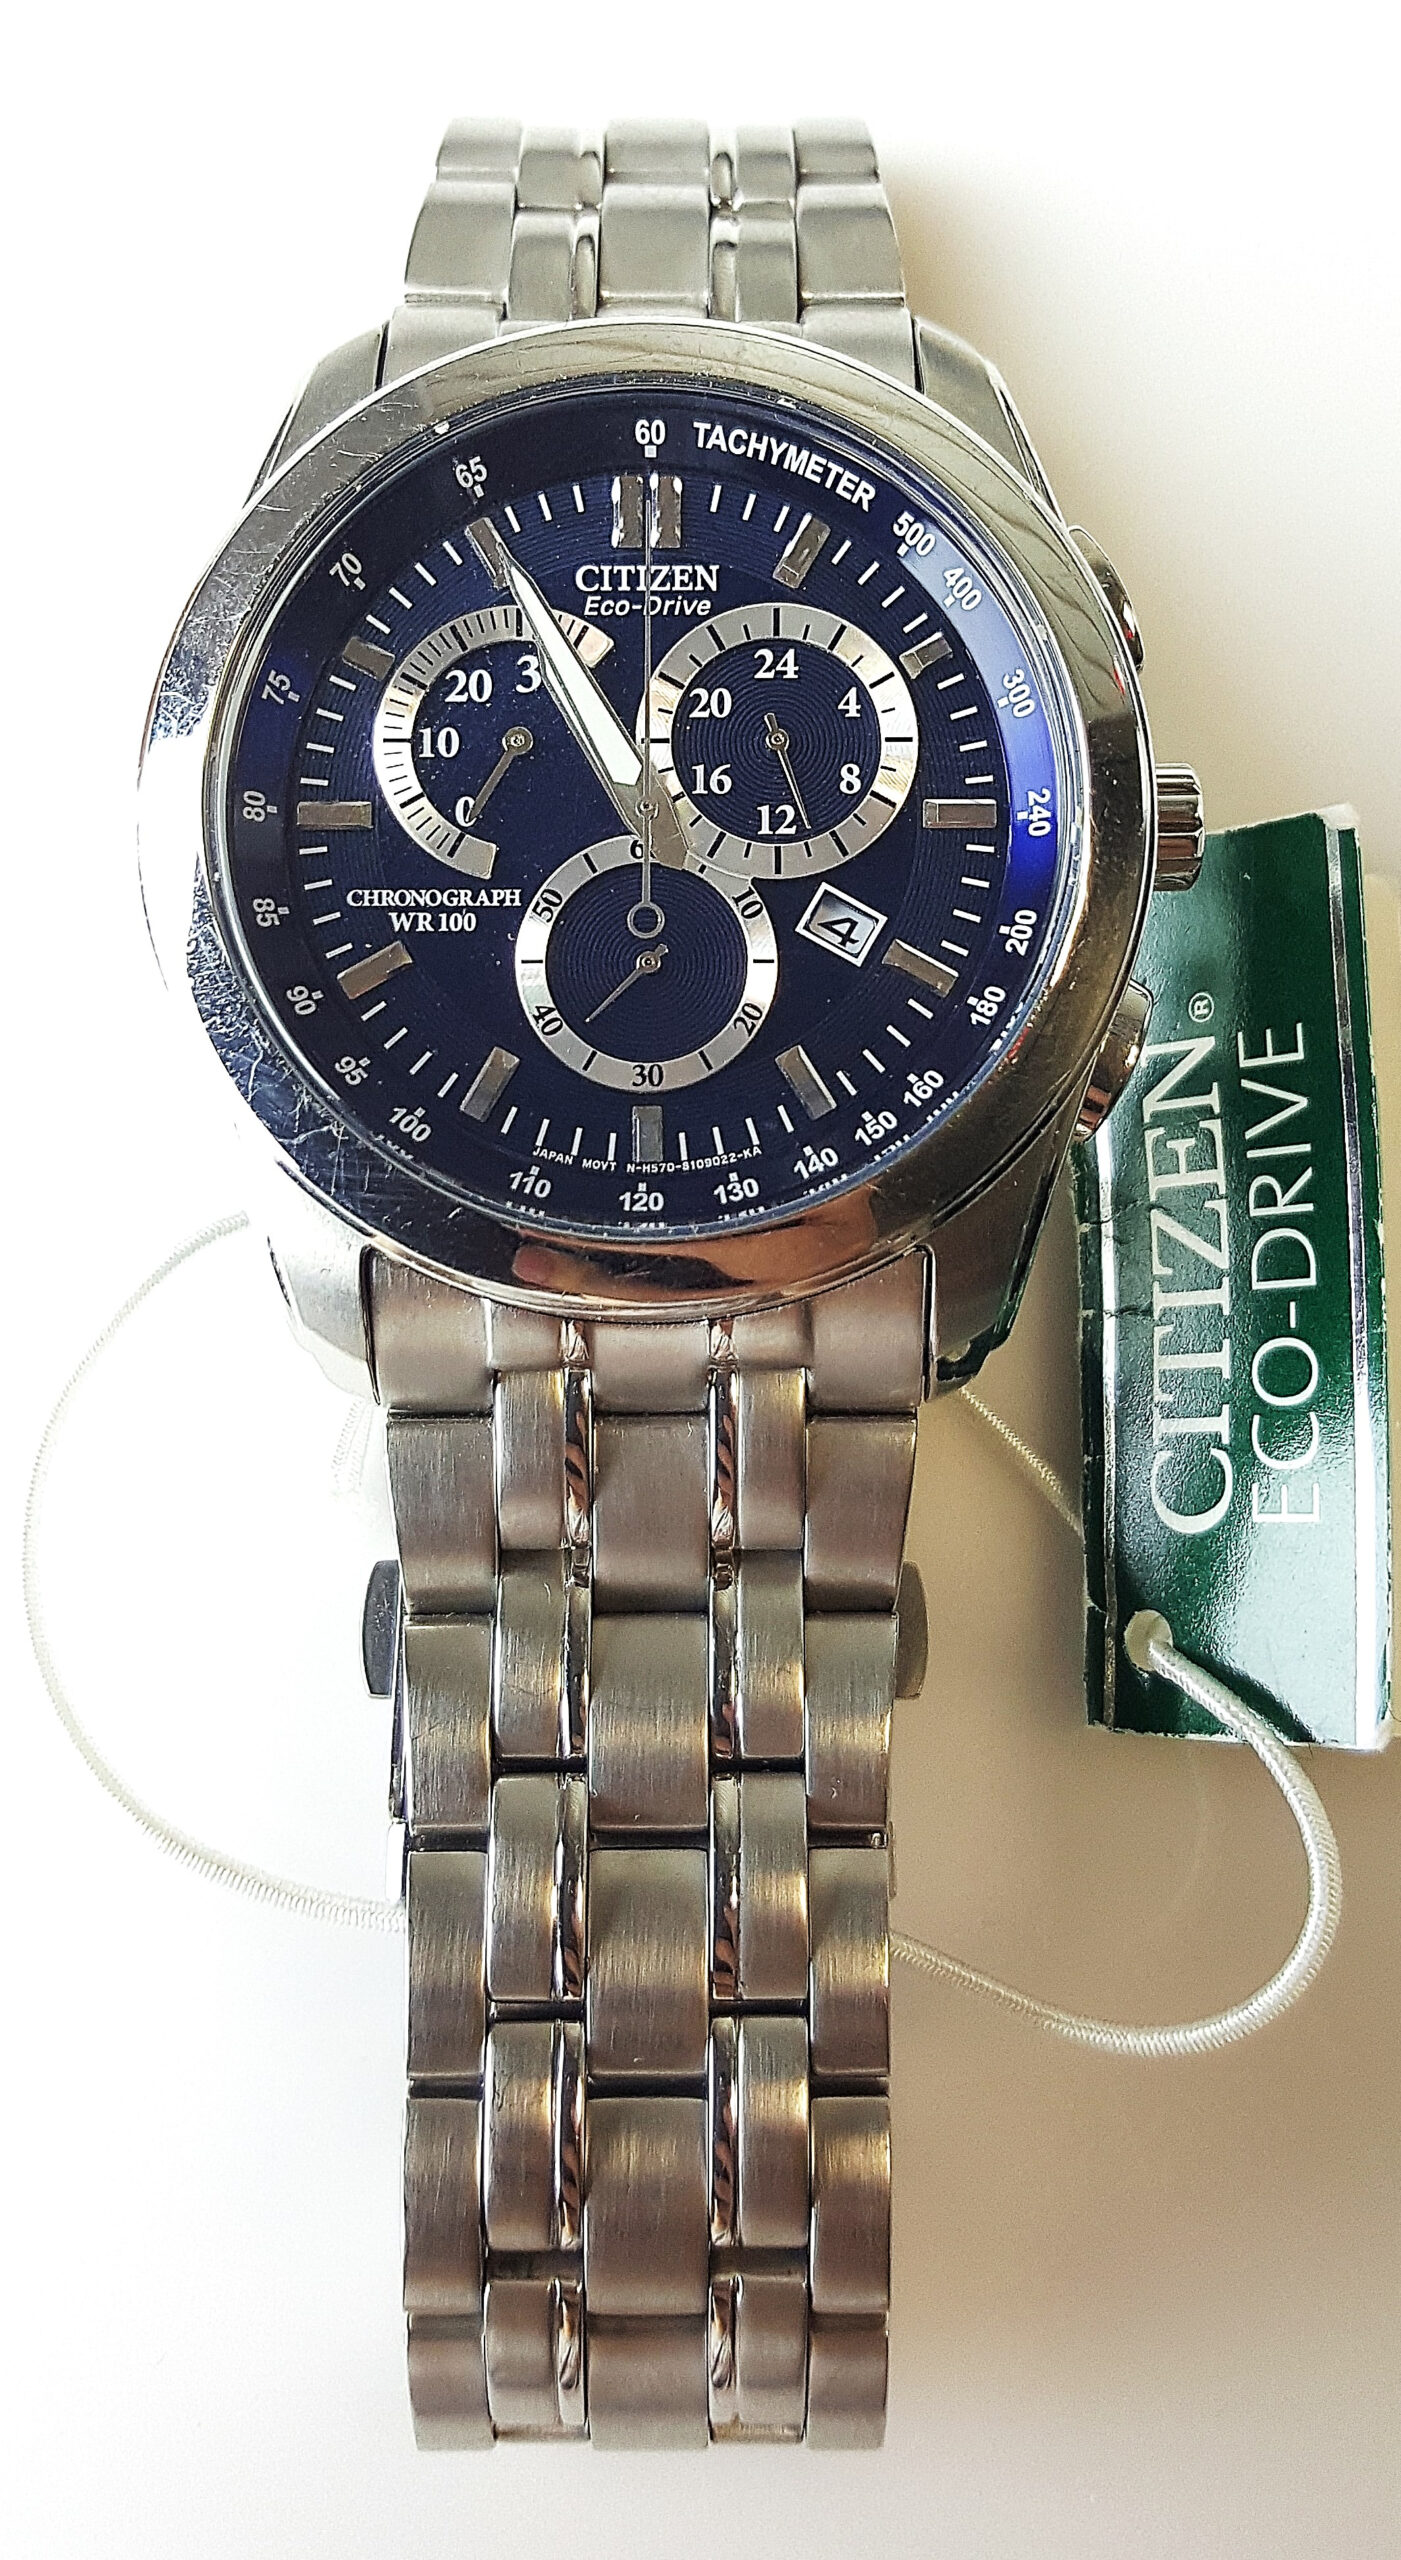 Citizen Eco Drive Gn 4W S 12G with regard to Citizen Eco Drive Chronograph Wr100 Manual